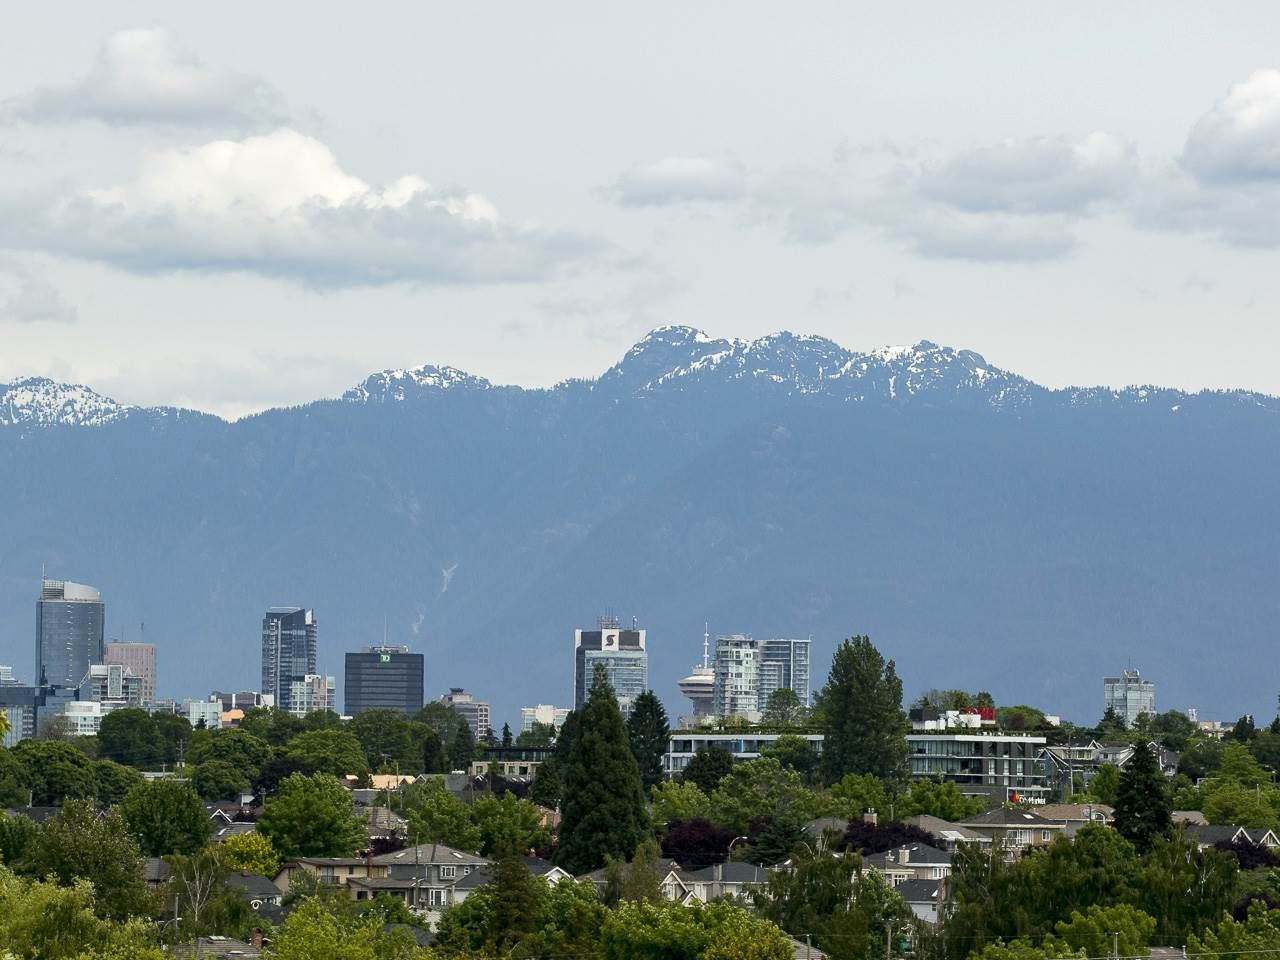 """Main Photo: 4285 MACDONALD Street in Vancouver: Arbutus House for sale in """"Arbutus"""" (Vancouver West)  : MLS®# R2551166"""